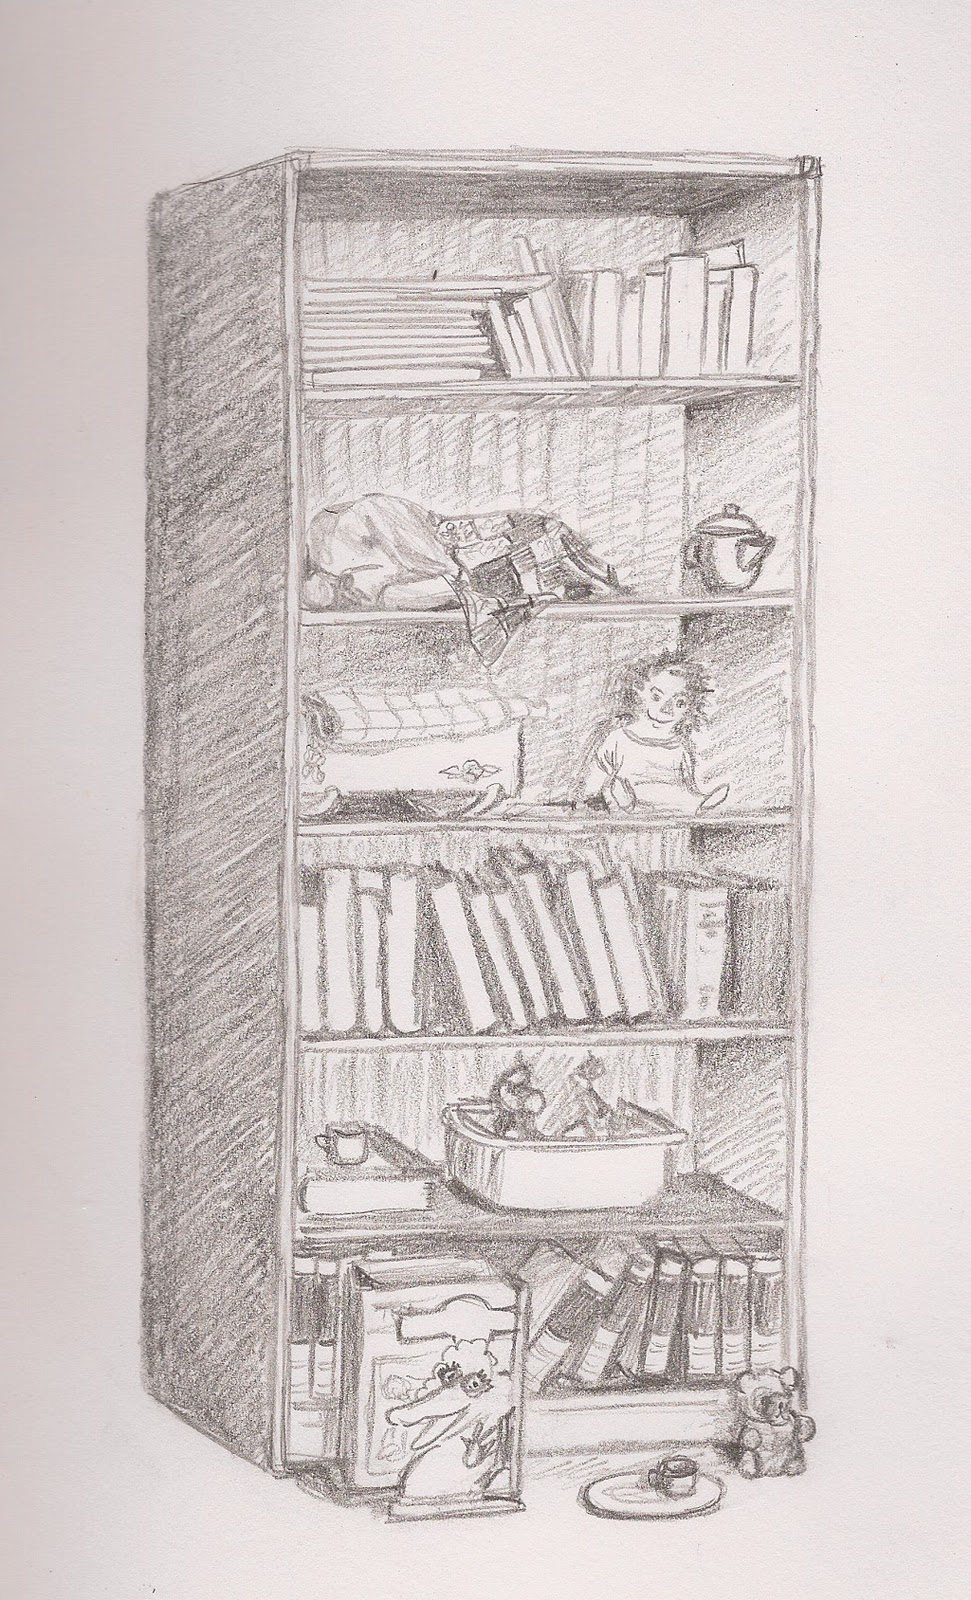 This Is A Drawing Of Bookshelf With Toys And BooksYou Might Recognize Some The From Earlier Blog Posts